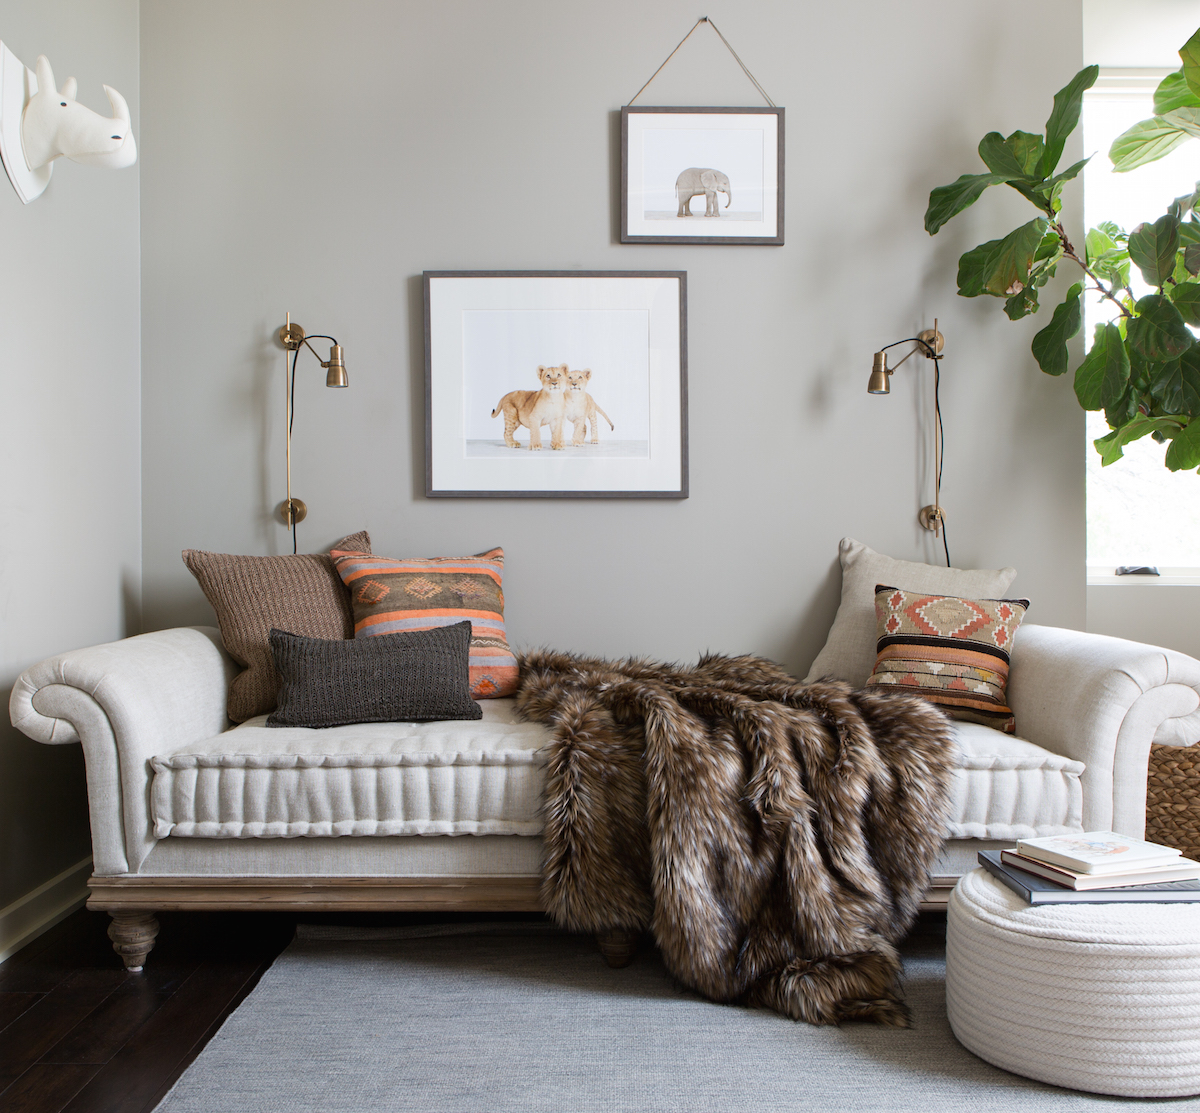 daybed & baby animal prints // modern baby boy's nursery